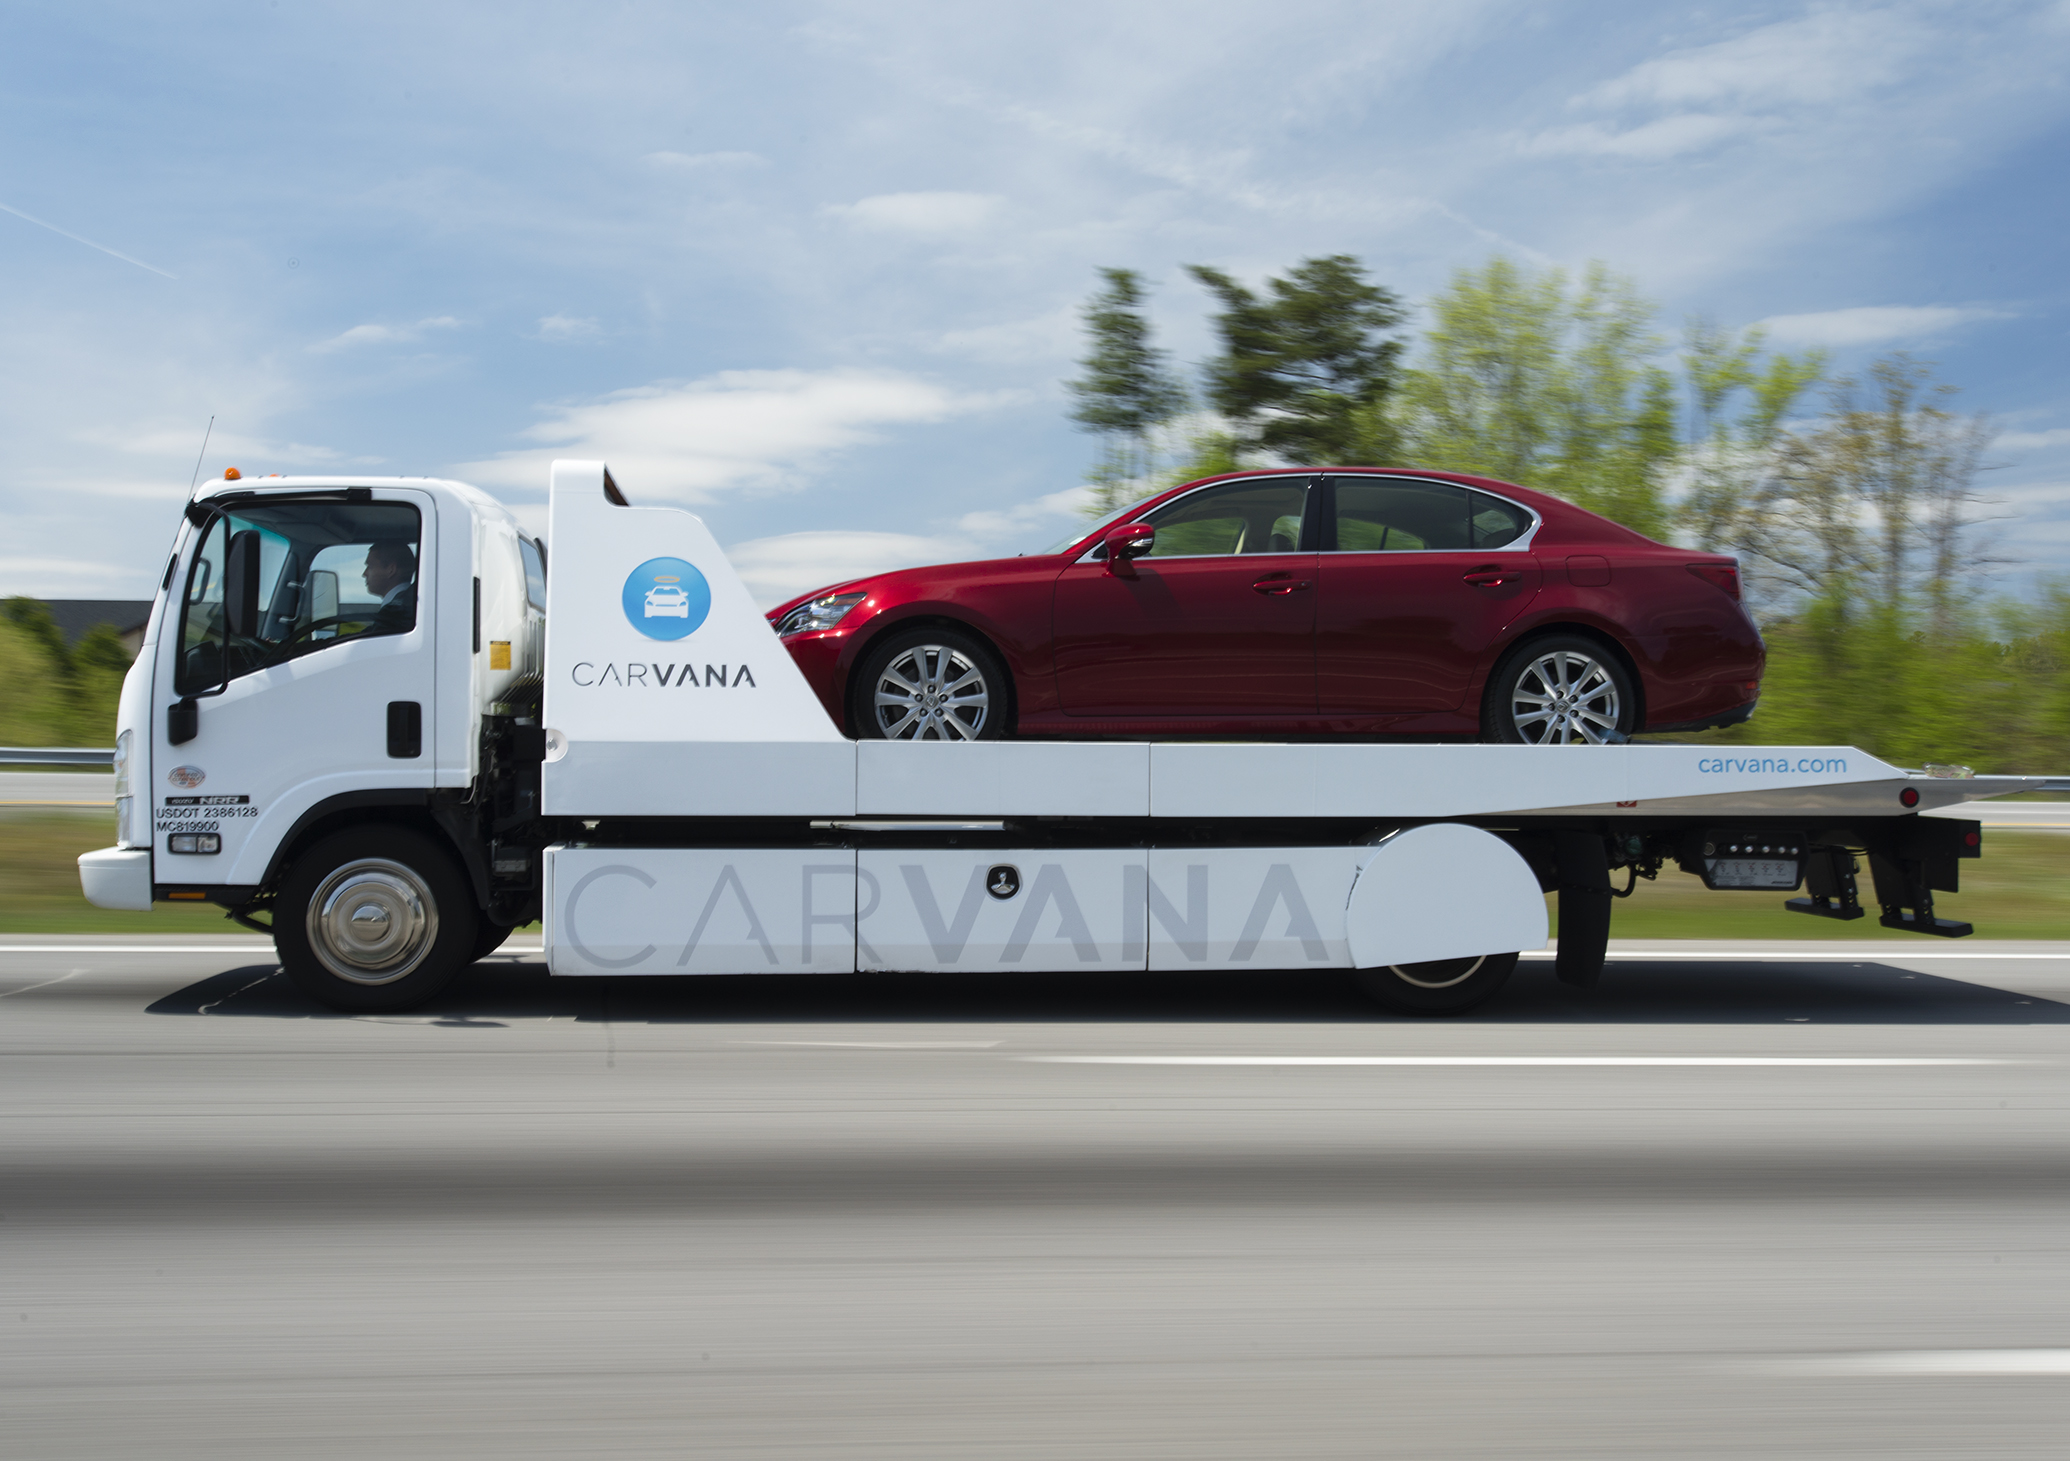 line Auto Sales Startup Carvana Is Raising $300 Million To Expand